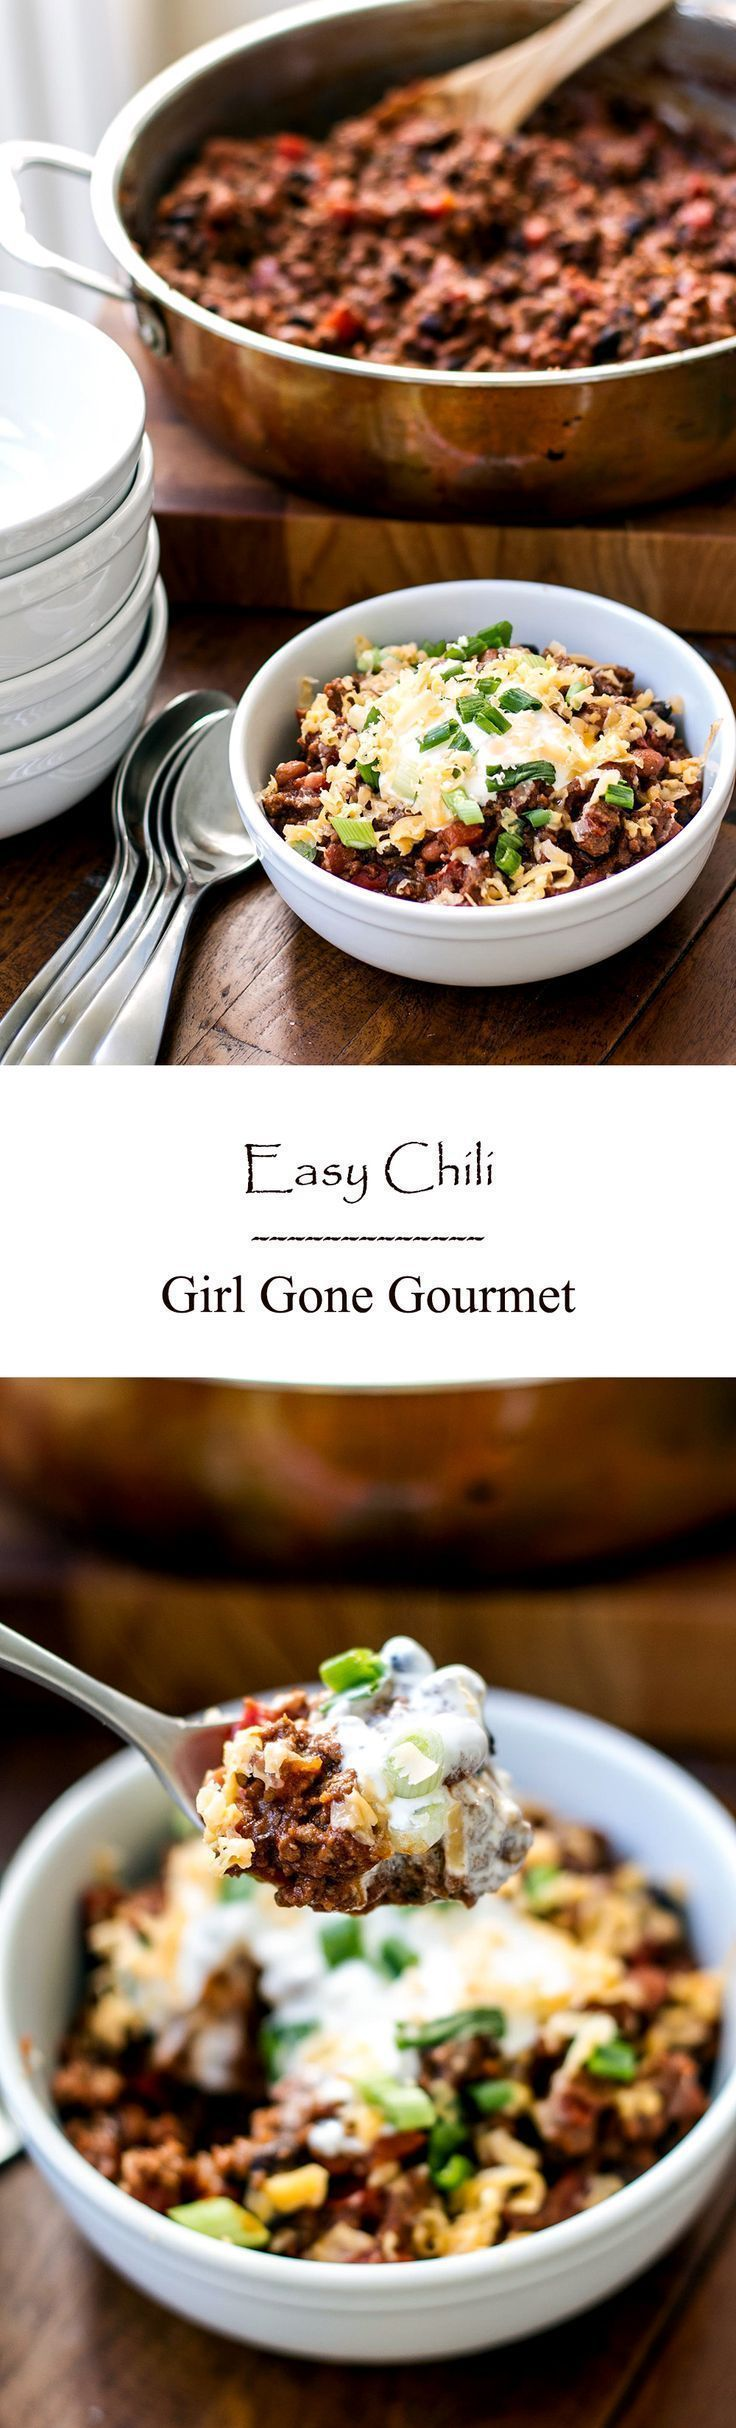 Easy chili with ground beef, black beans, pinto beans and lots of flavor! girlgonegourmet.com